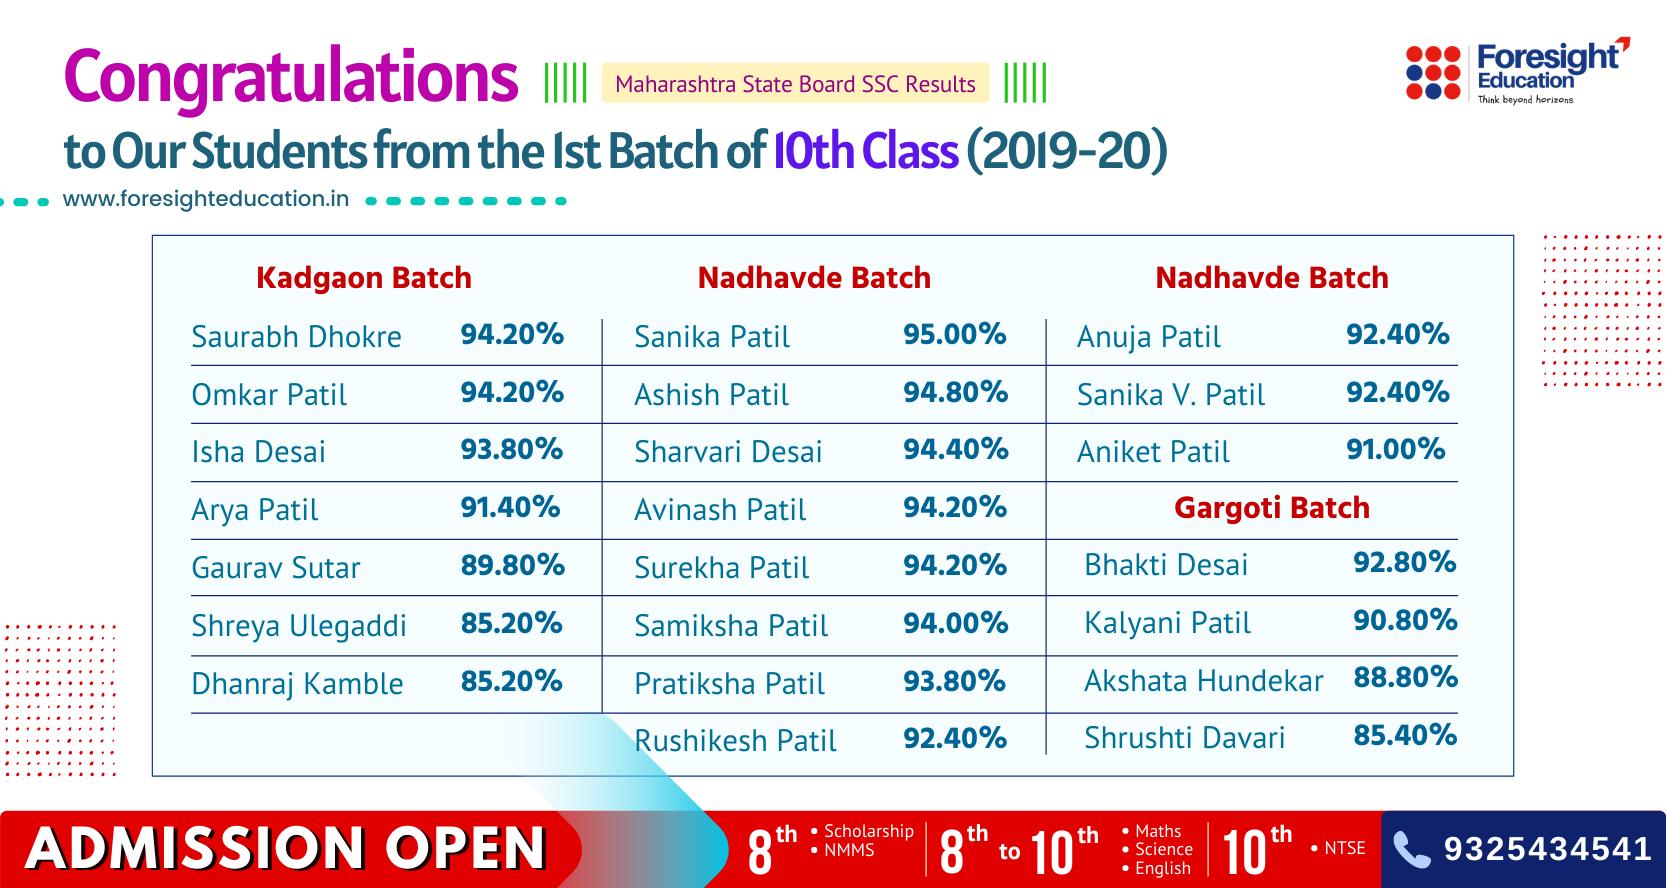 10th Class Results 2019-20 Batch - Foresight Education